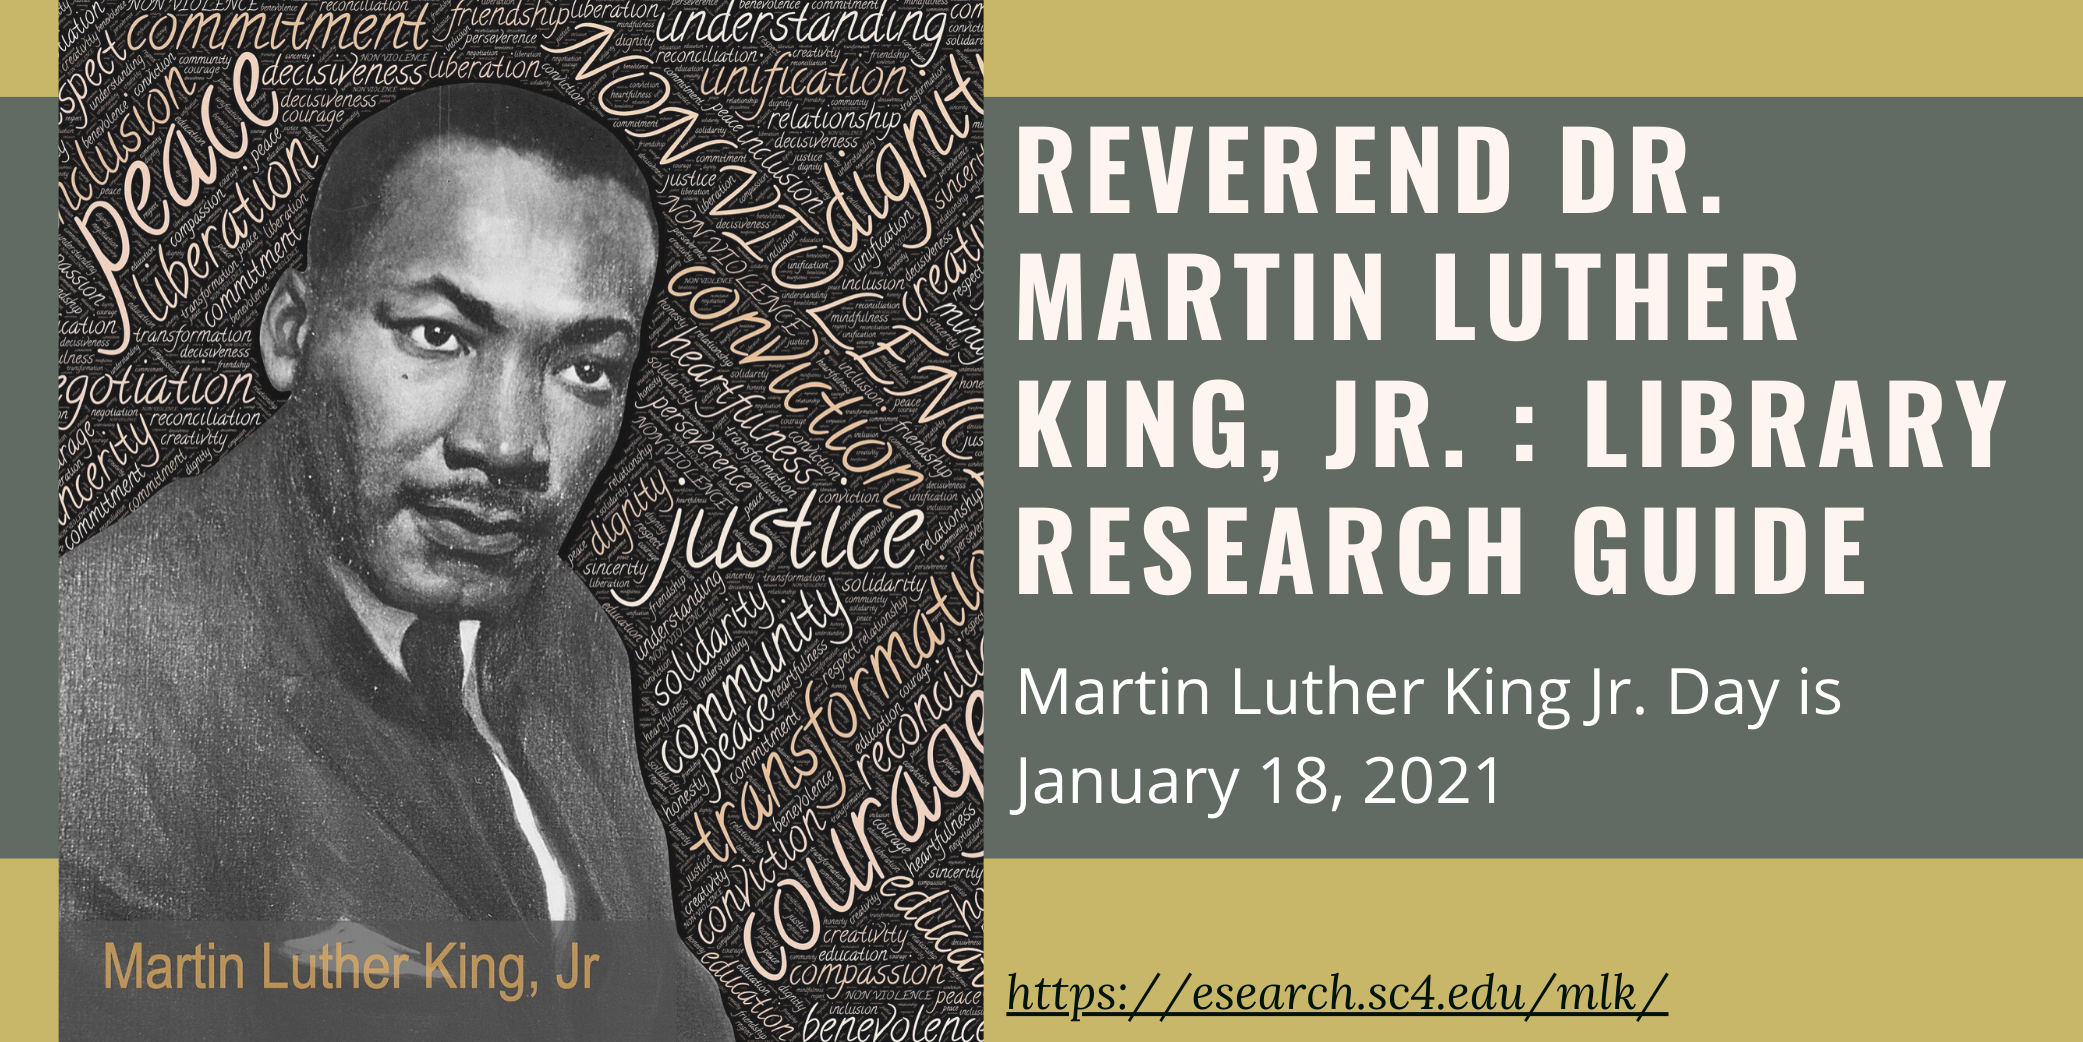 martin luther king, jr library research guide- mlk day is january 18, 2021